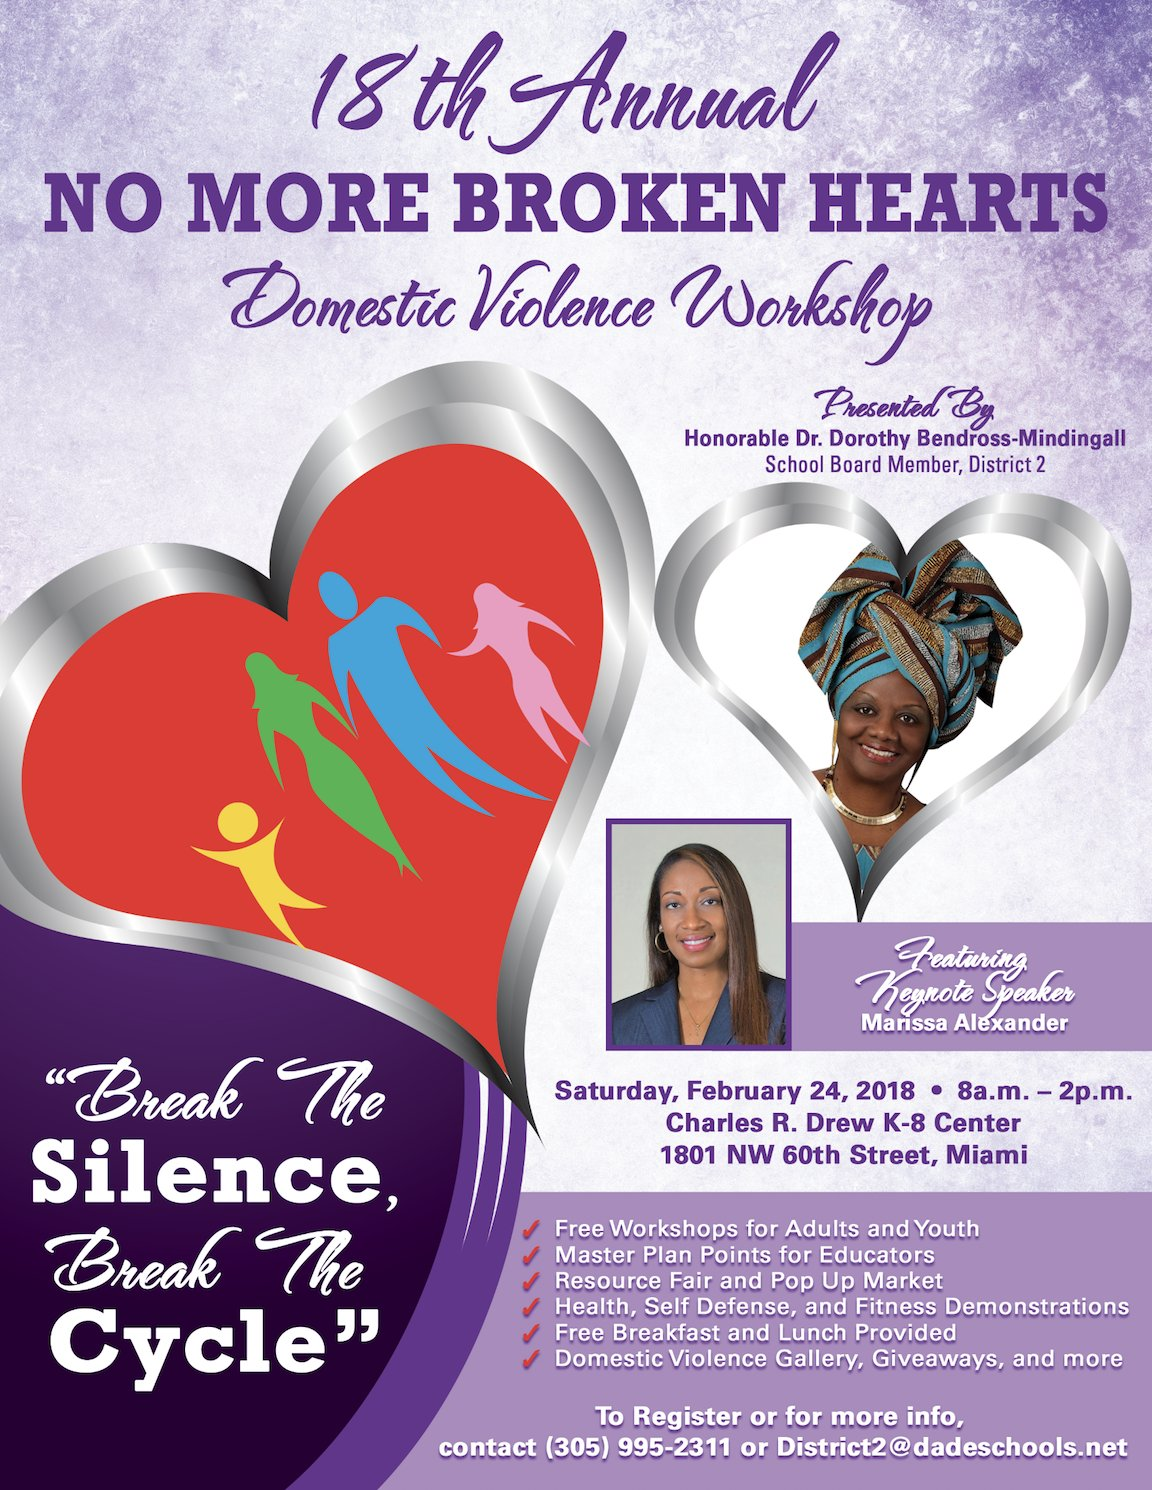 18th Annual No More Broken Hearts Domestic Violence Workshop Break The SilenceBreak Cycle Dr Dorothy Bendross Mindingall